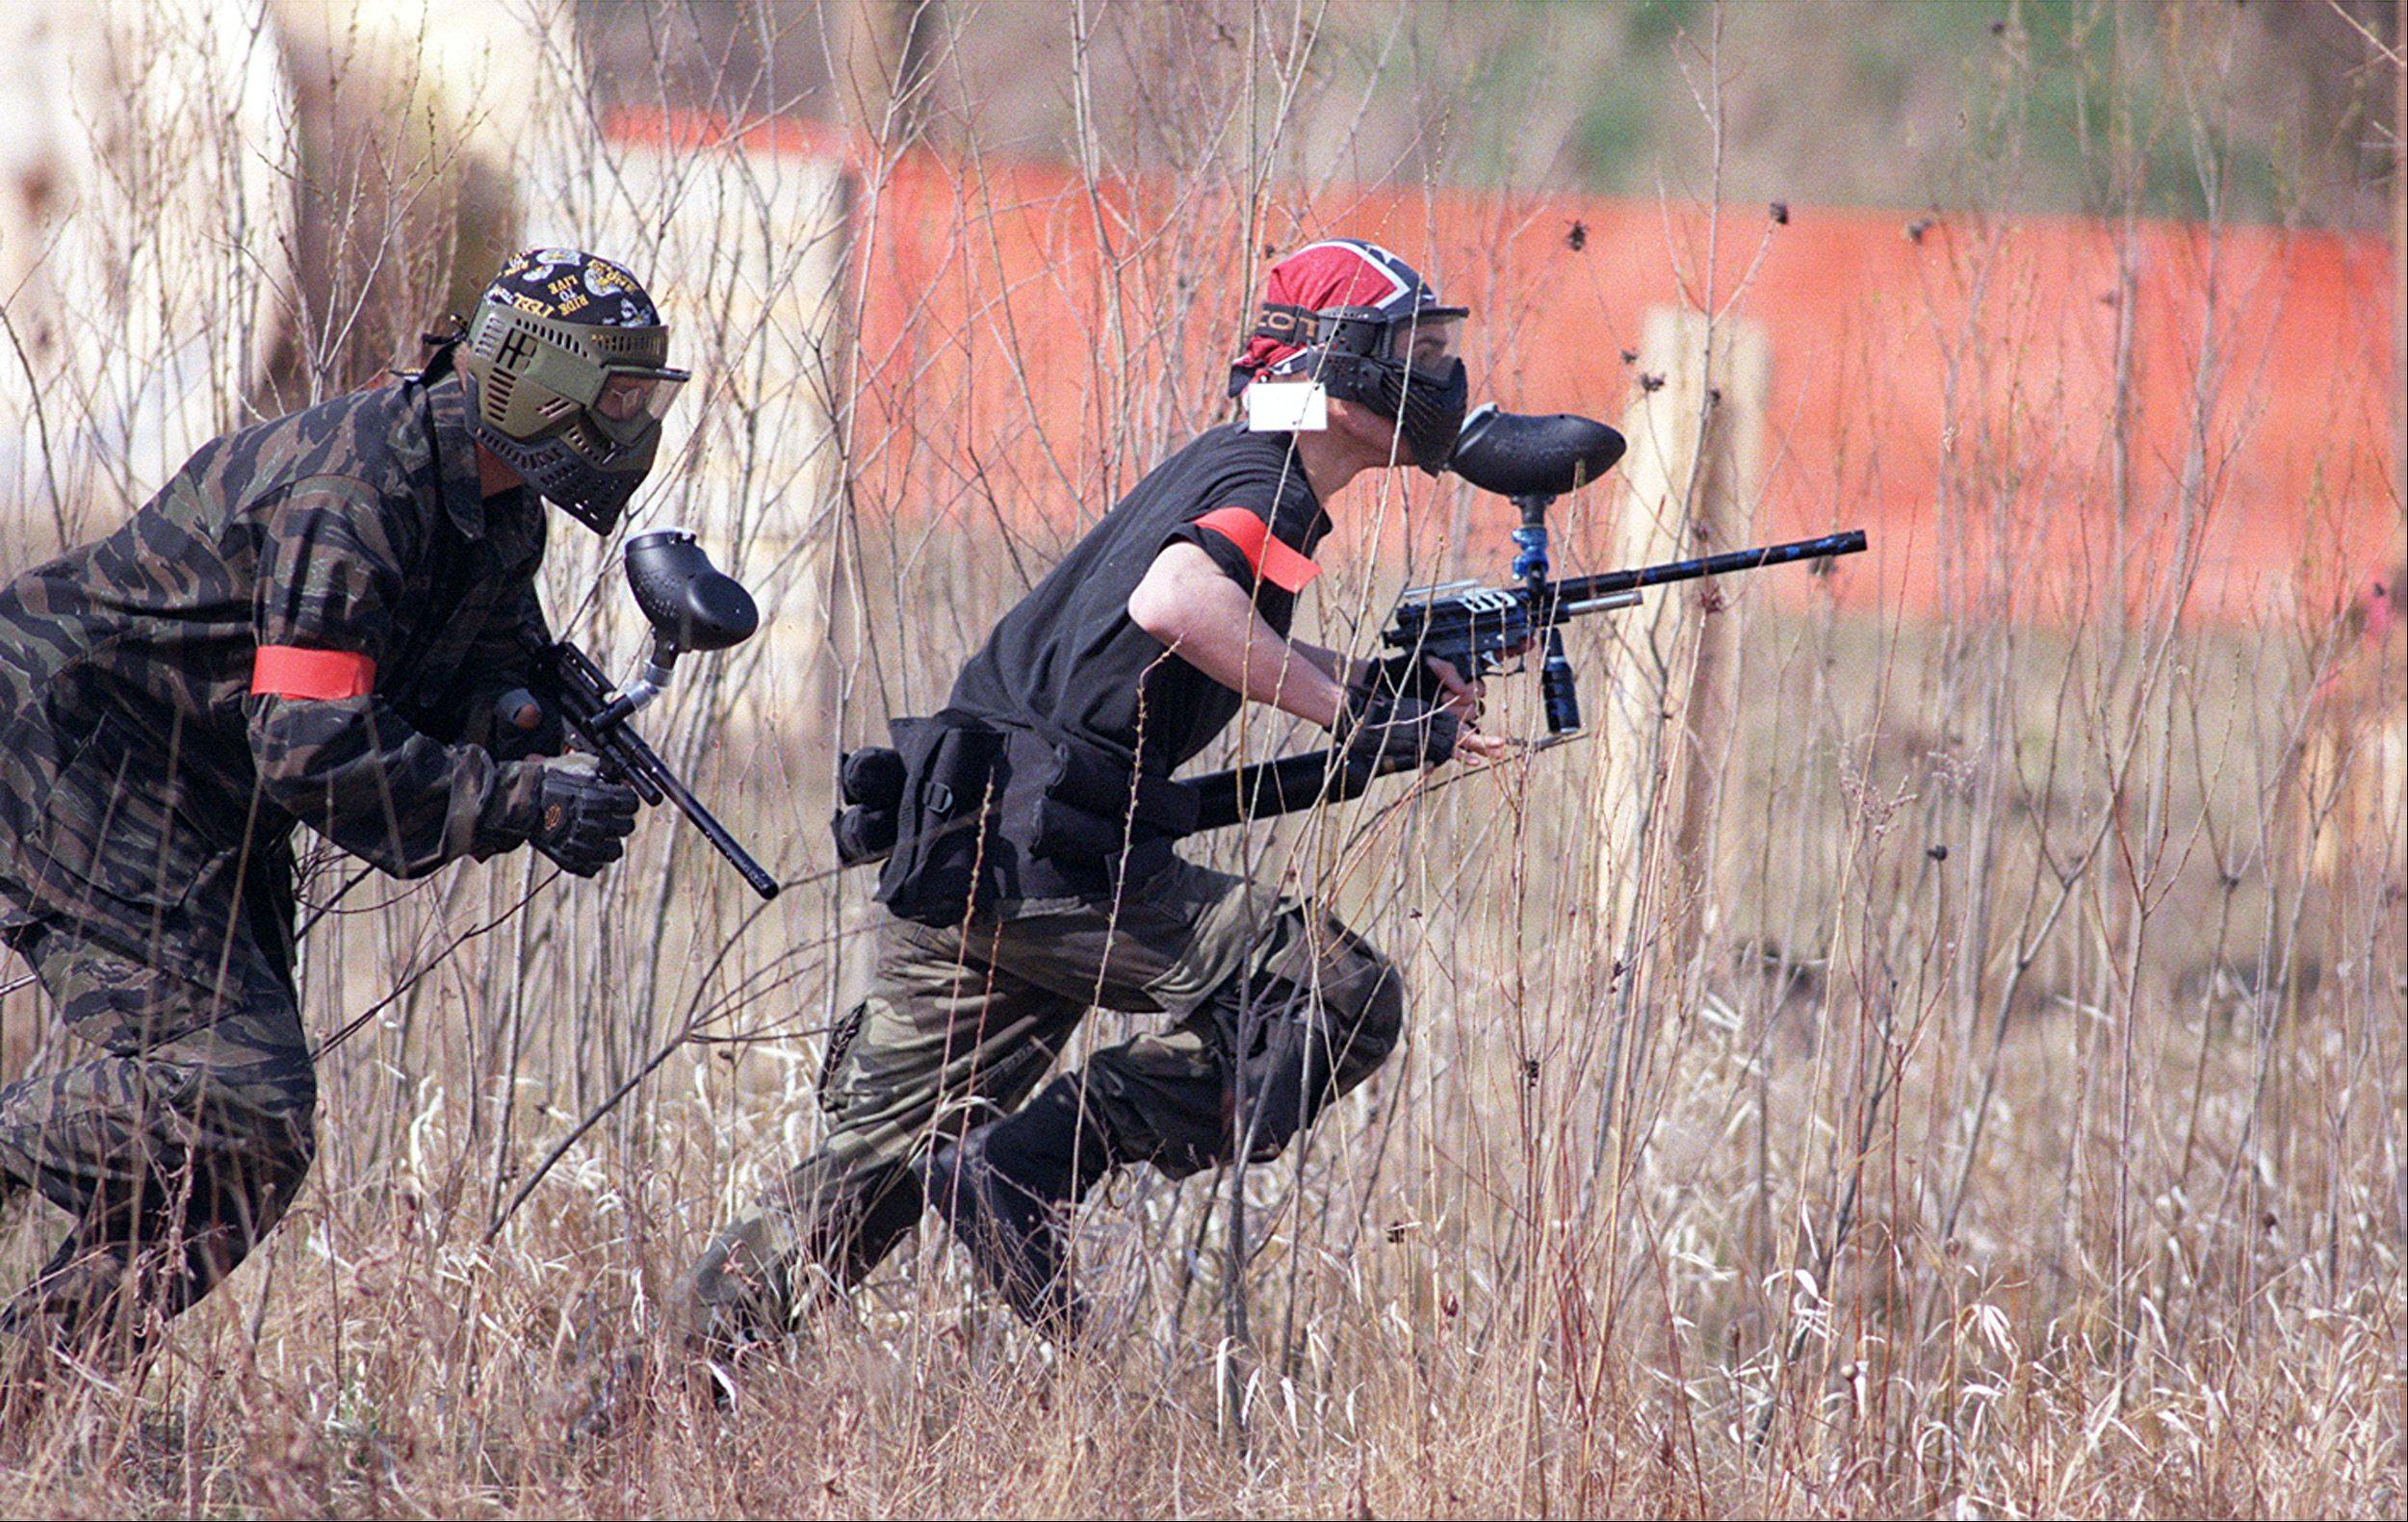 Kane County is looking changing its zoning codes to allow recreational uses, such as paintball courses, on land zoned for agriculture.